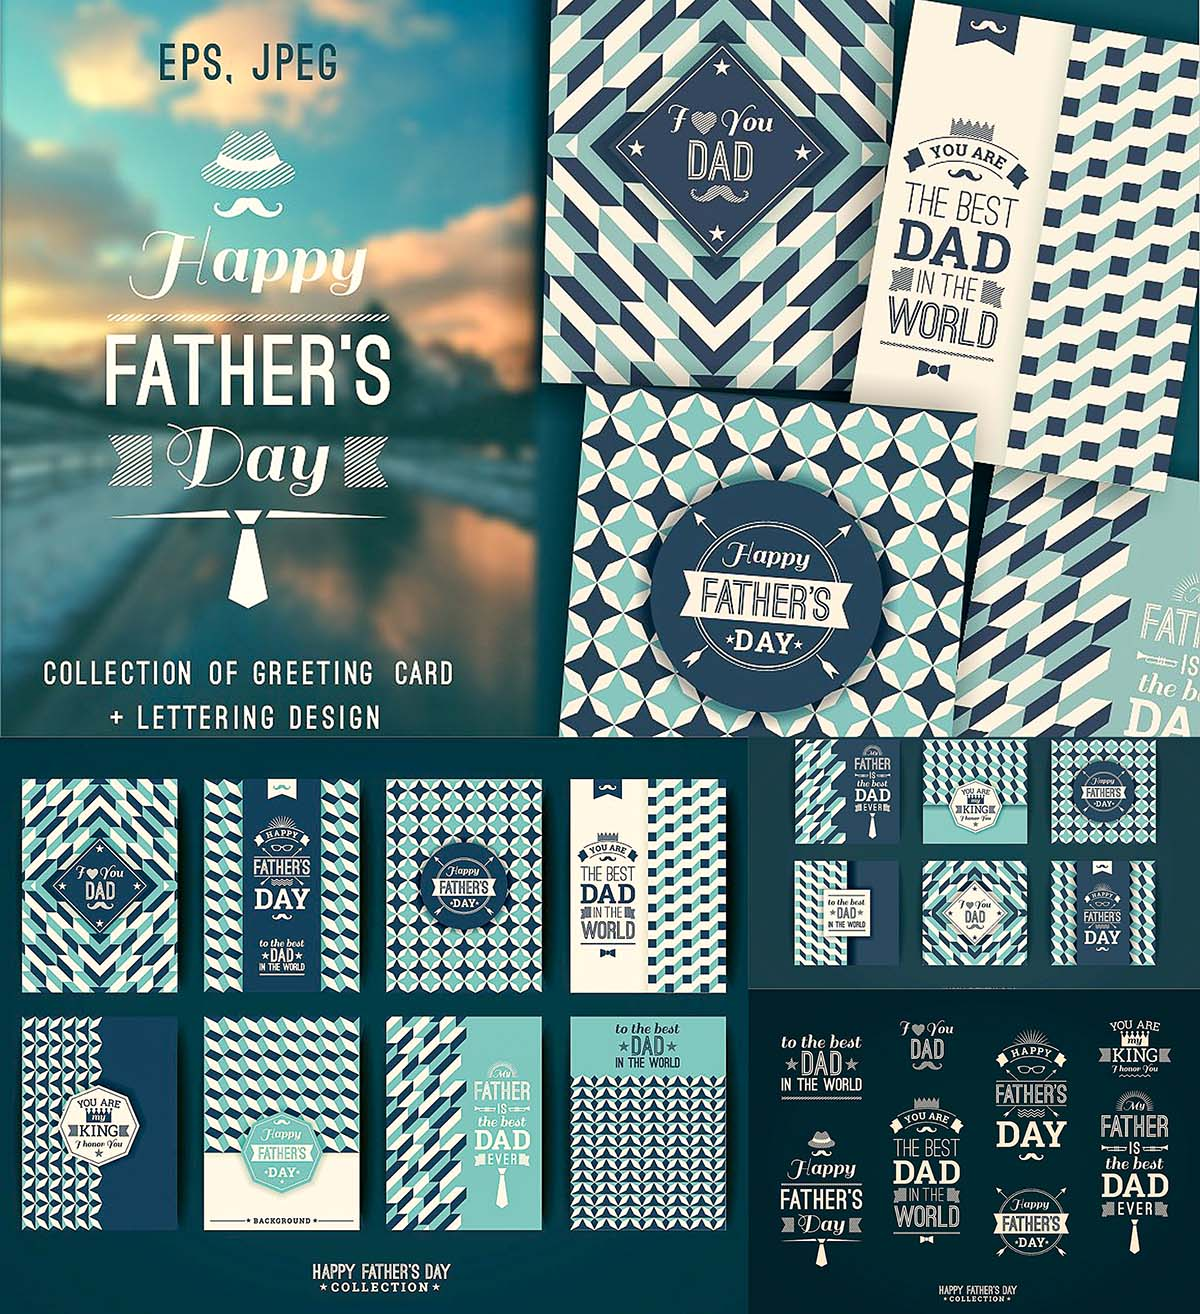 12 Greeting Cards For Fathers Day Free Download